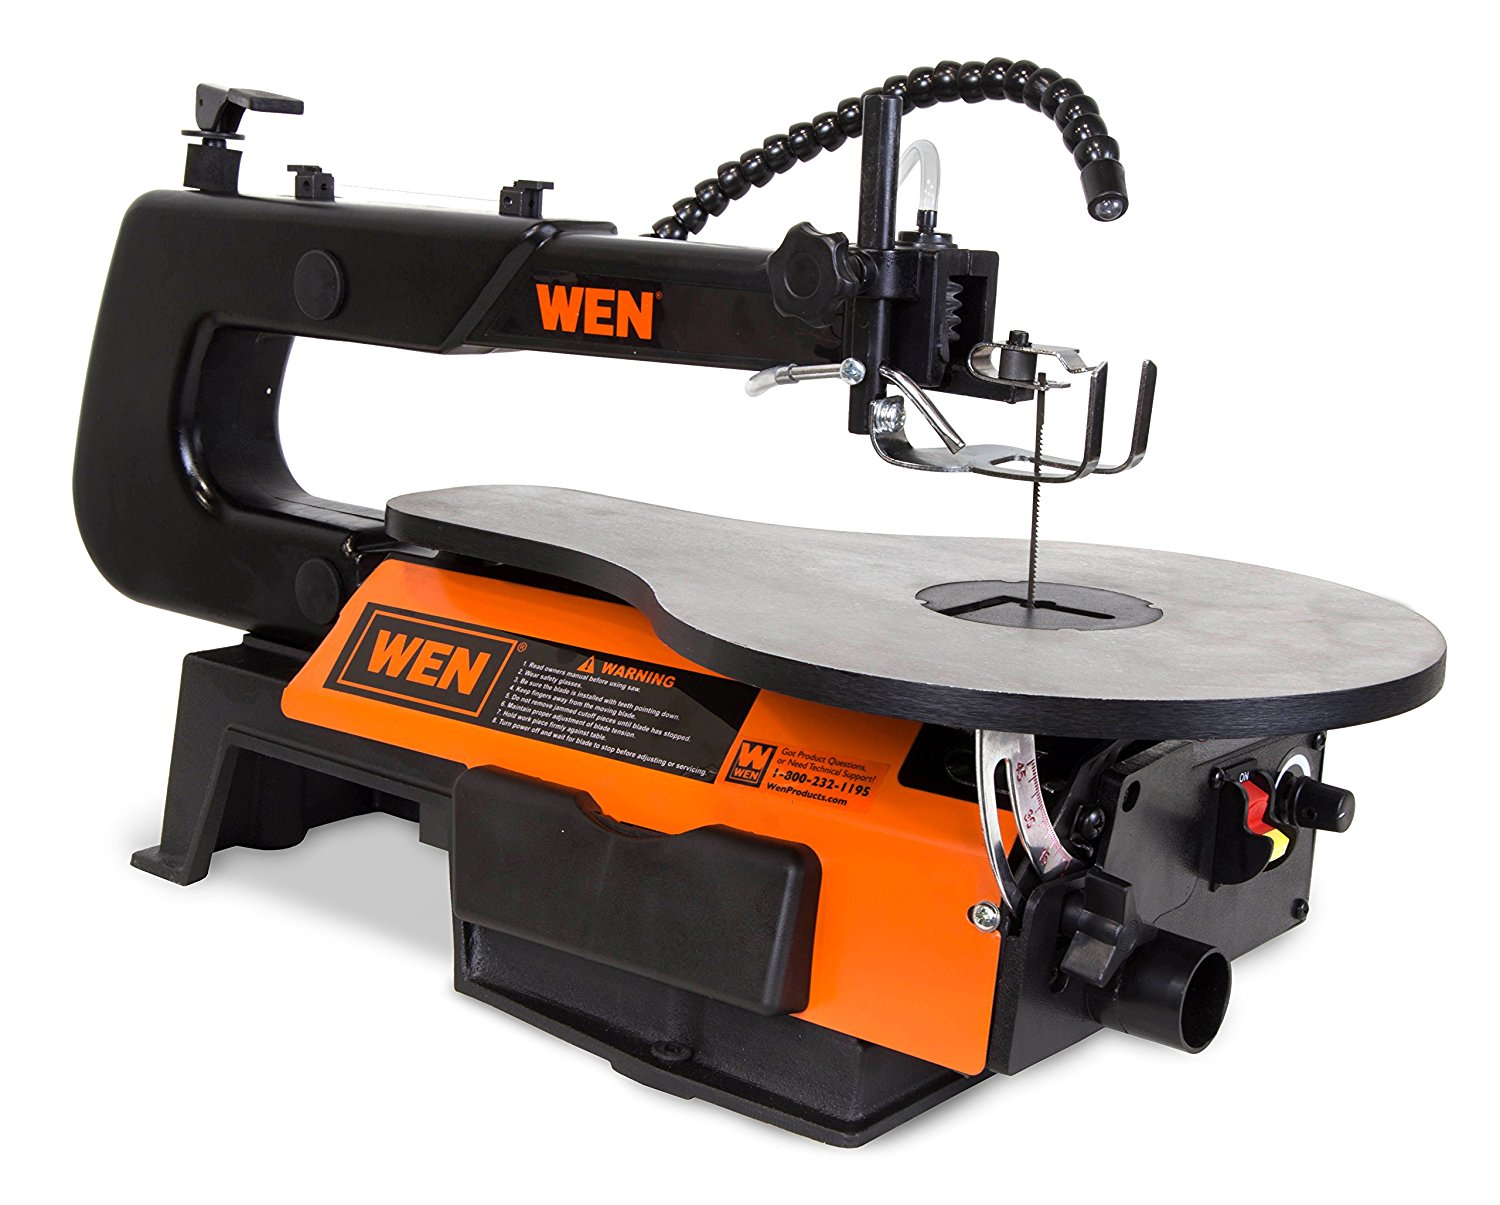 WEN 16-Inch Variable Speed Scroll Saw